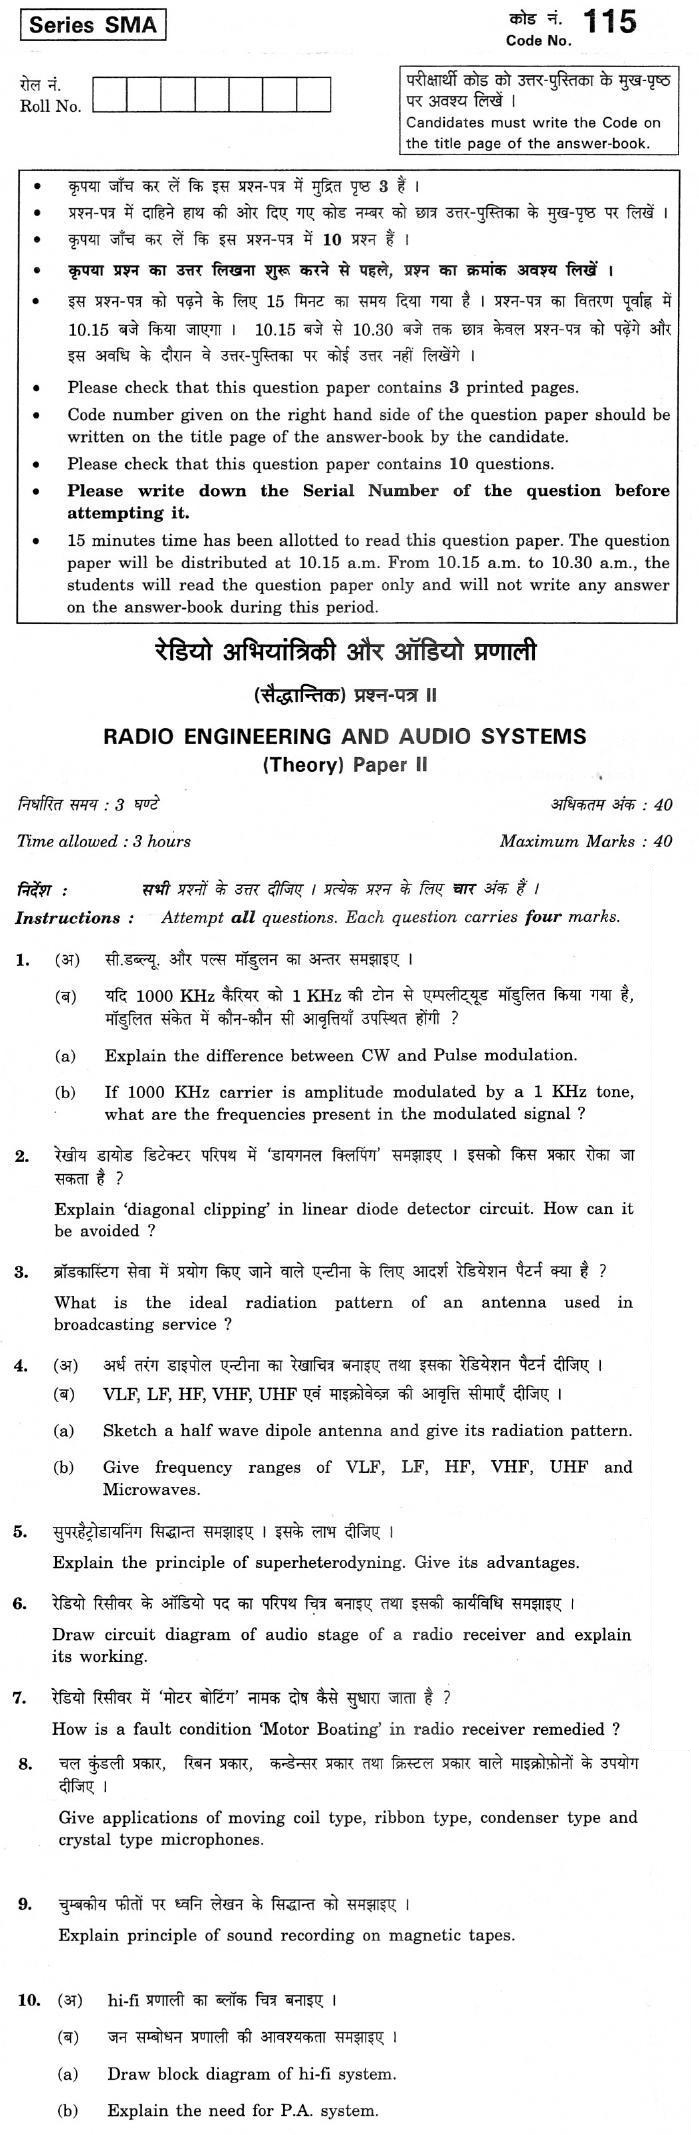 CBSE Class XII Previous Year Question Paper 2012 Radio Engineering and Audio Systems Paper II